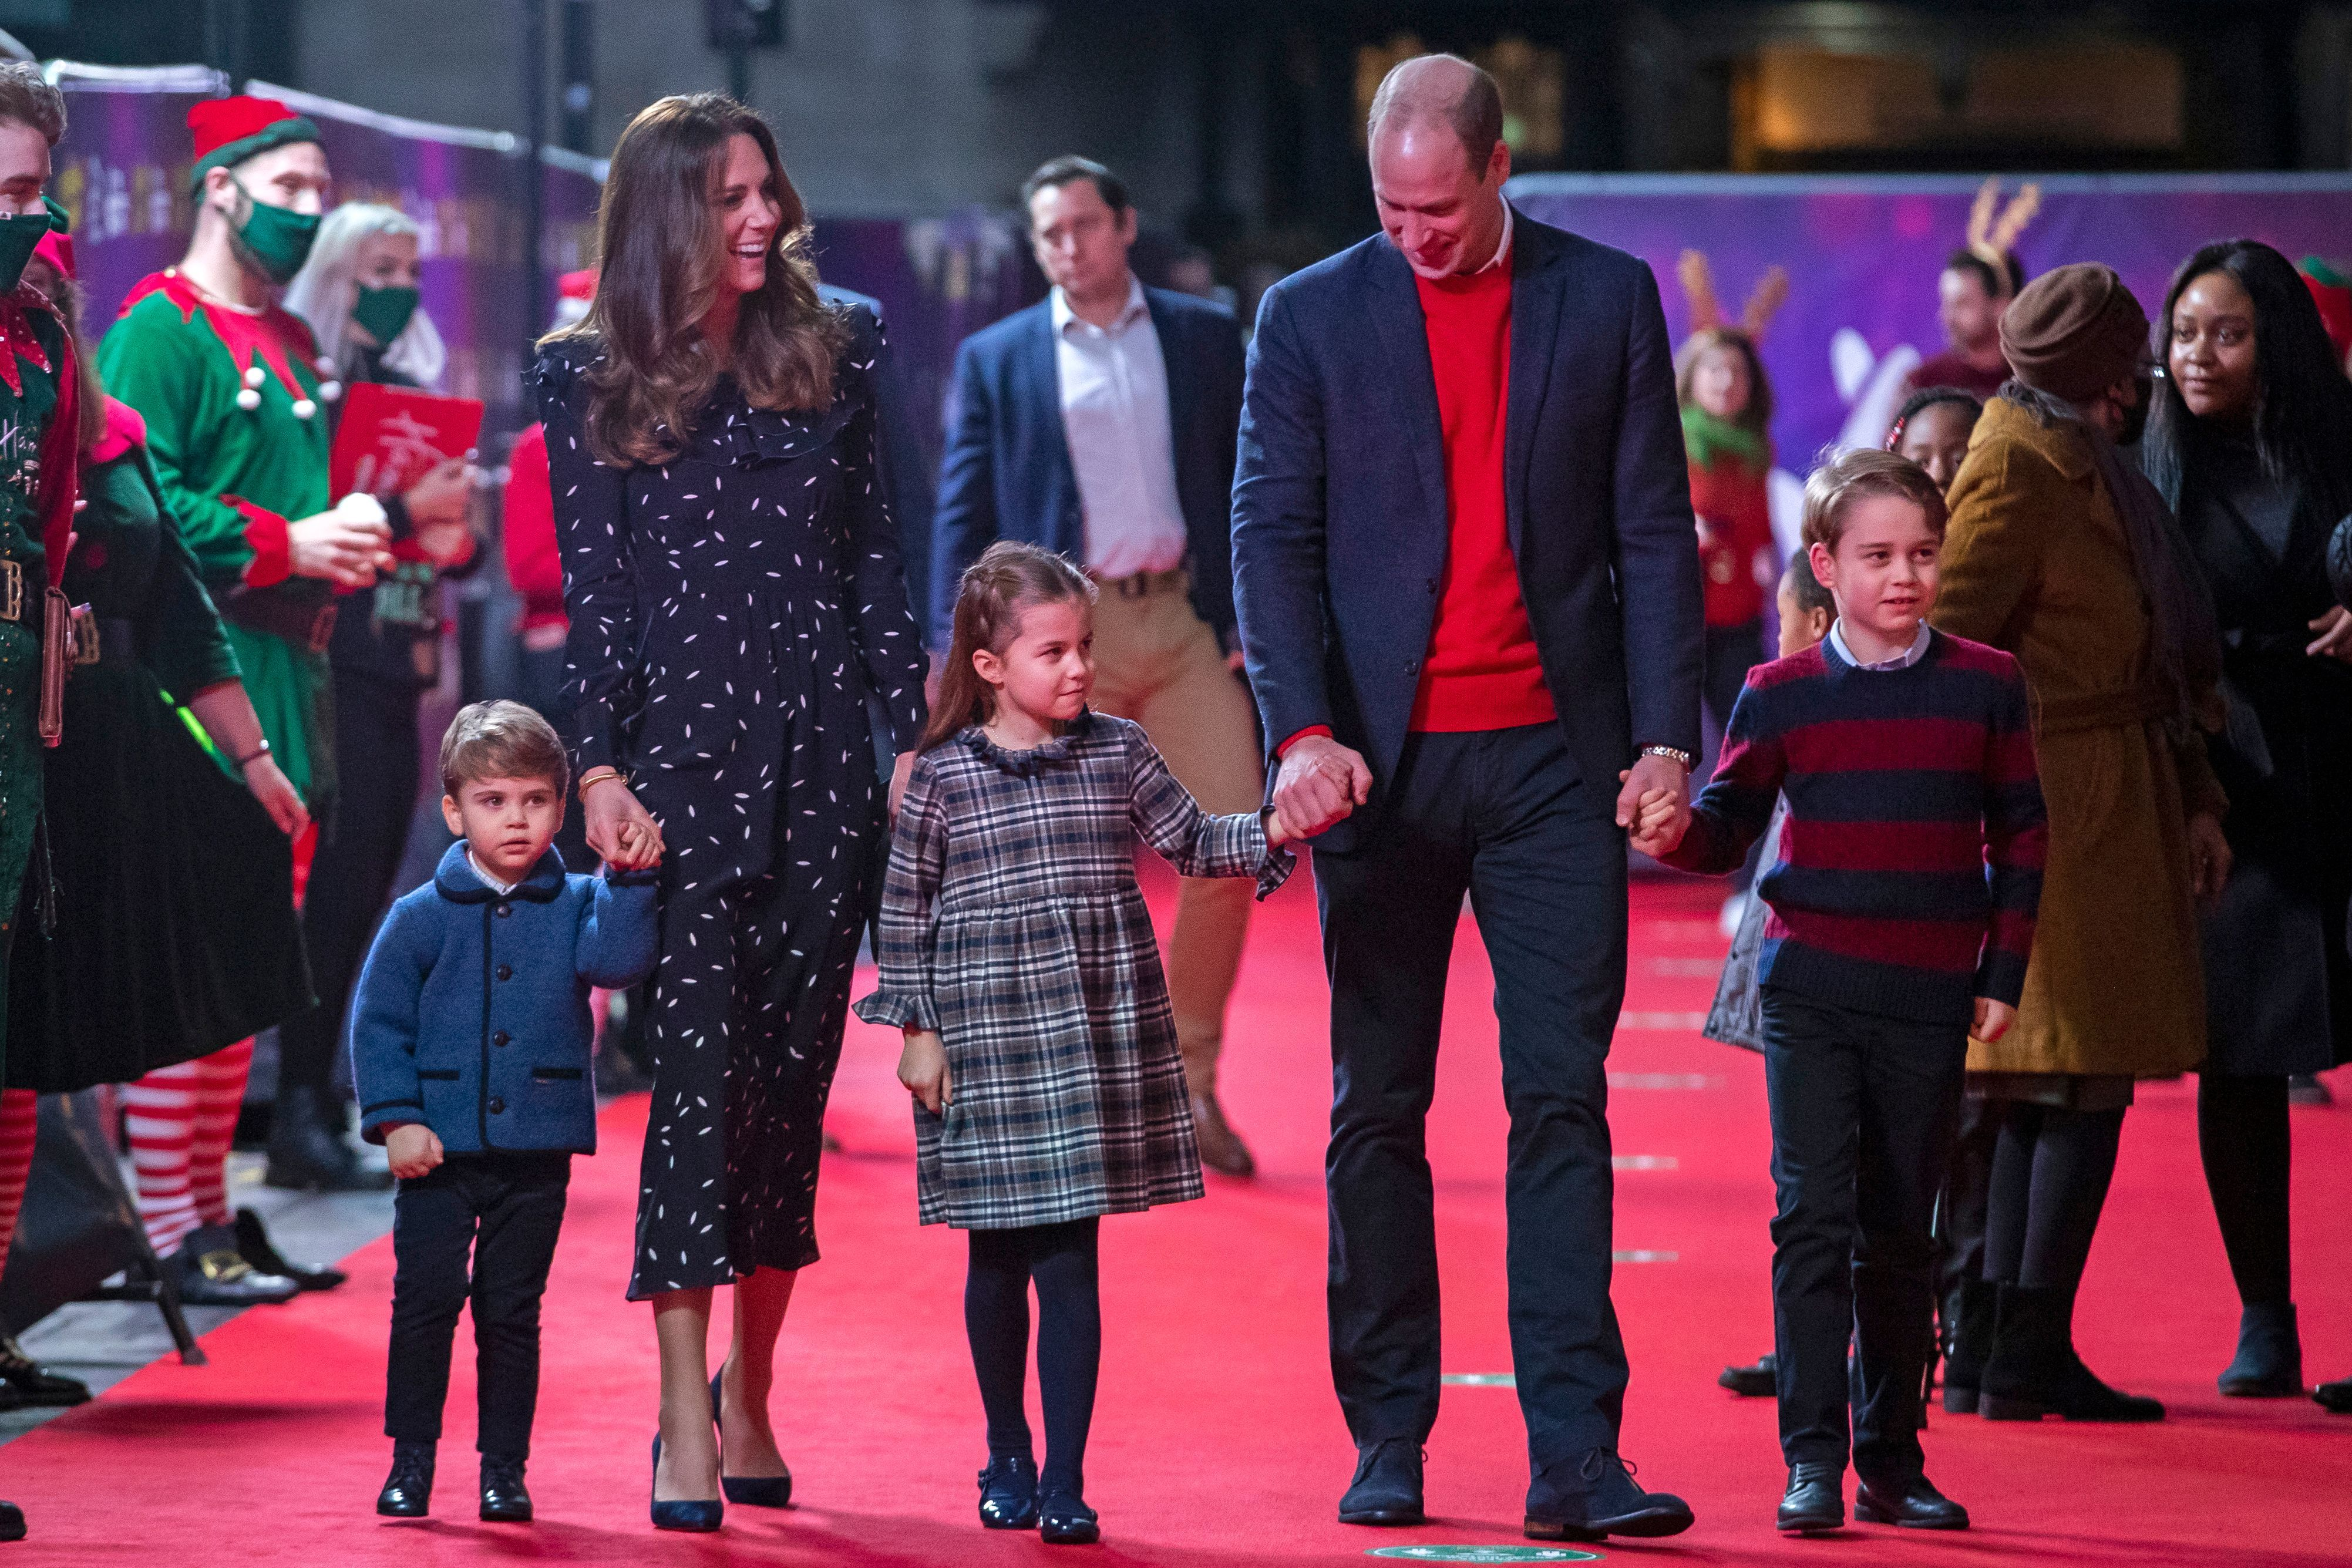 Prince George and Princess Charlotte made a surprise public appearance with Prince William on Father's Day